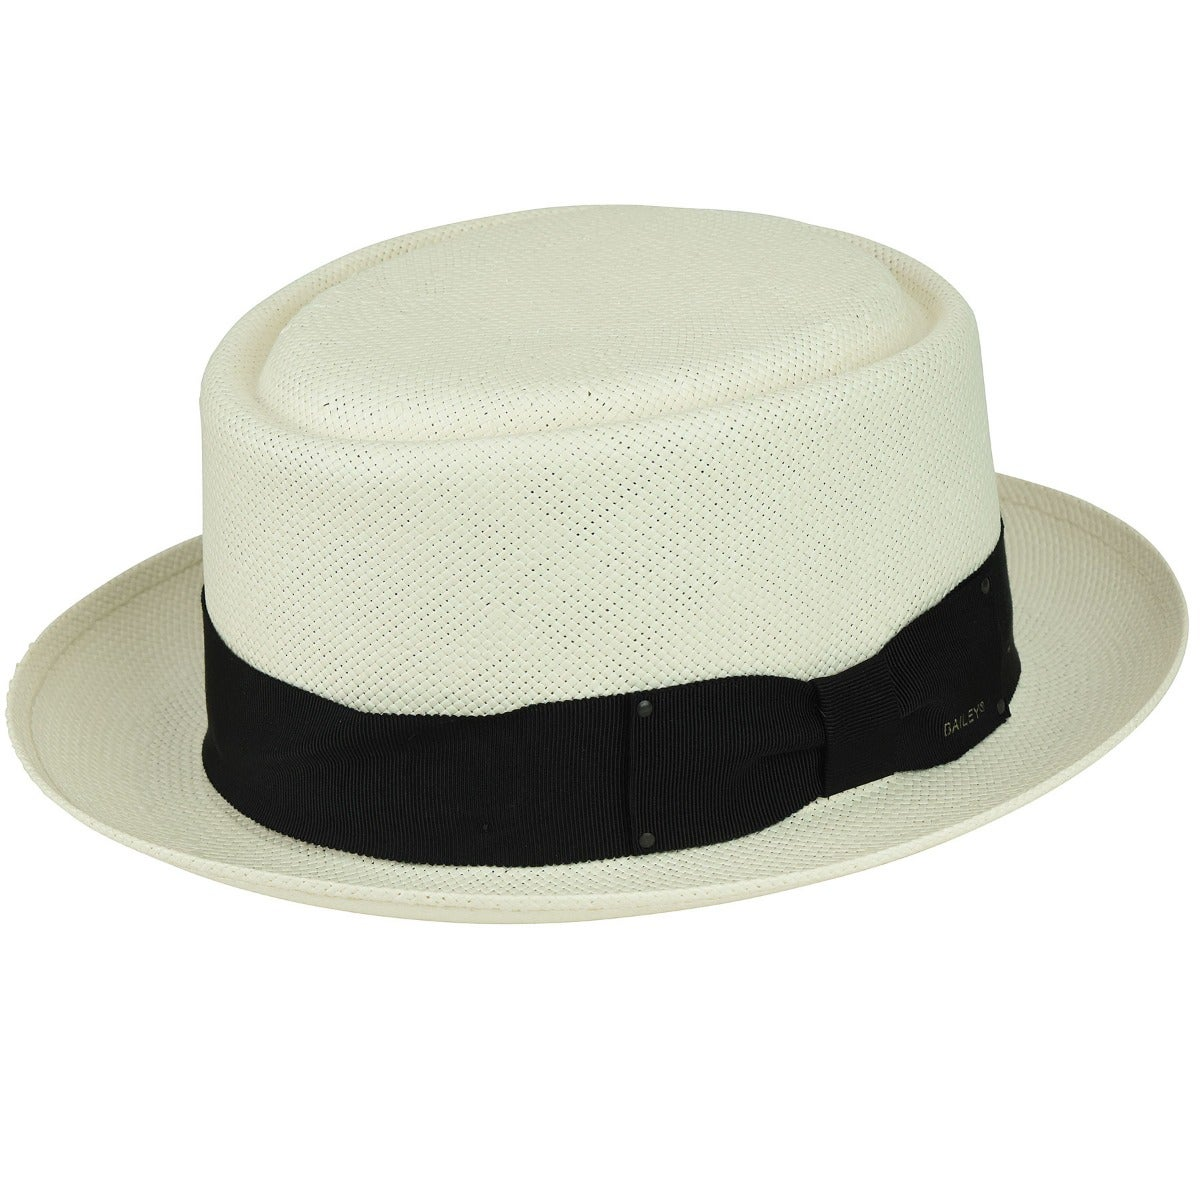 1940s Mens Hats | Fedora, Homburg, Porkpie Hats Larkin LiteStraw reg Pork Pie $150.00 AT vintagedancer.com